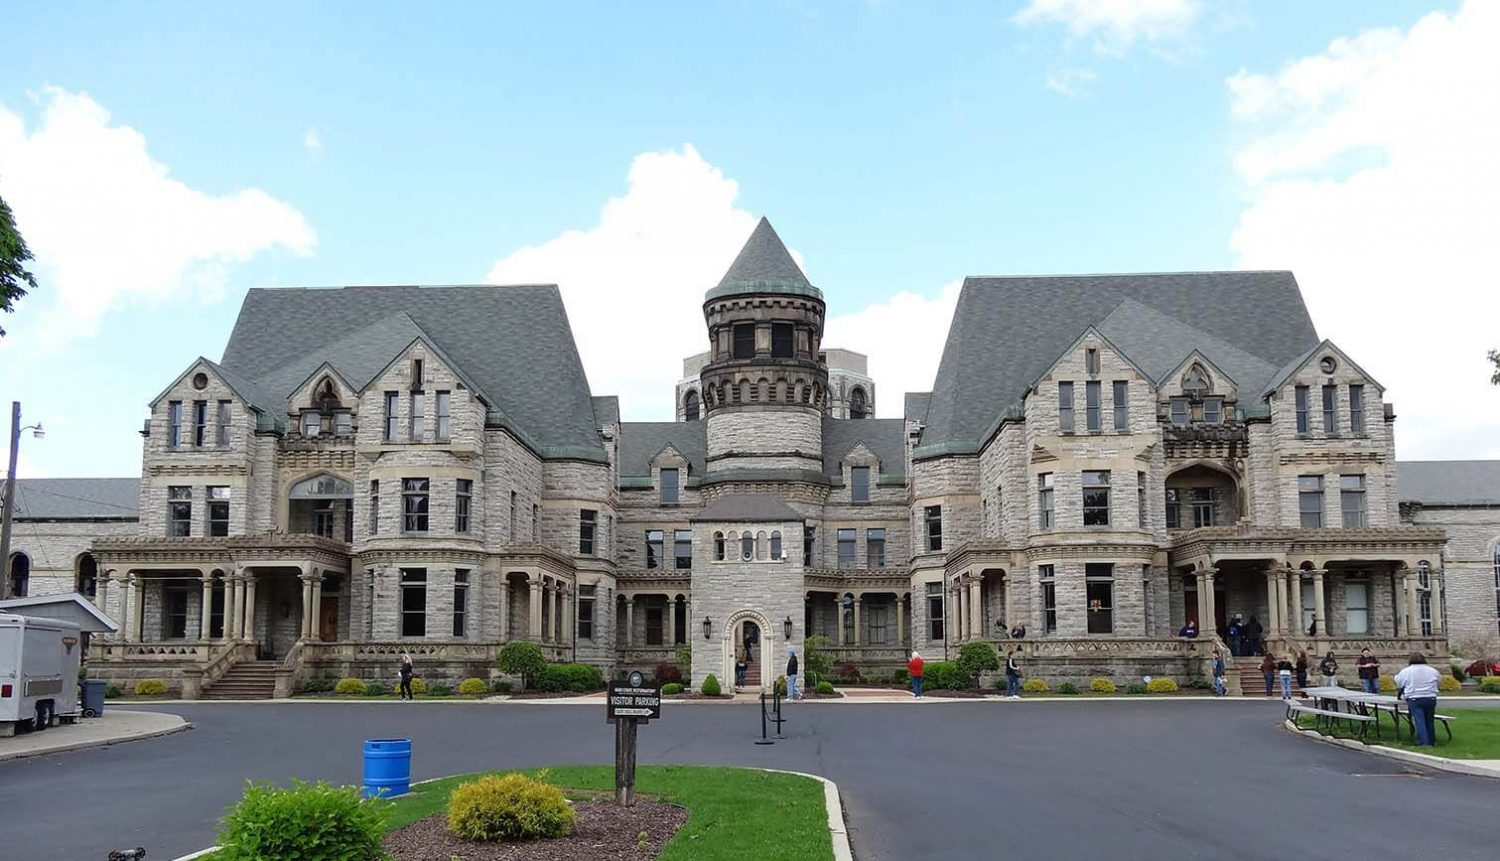 Murderous Good Fun coming to Ohio State Reformatory